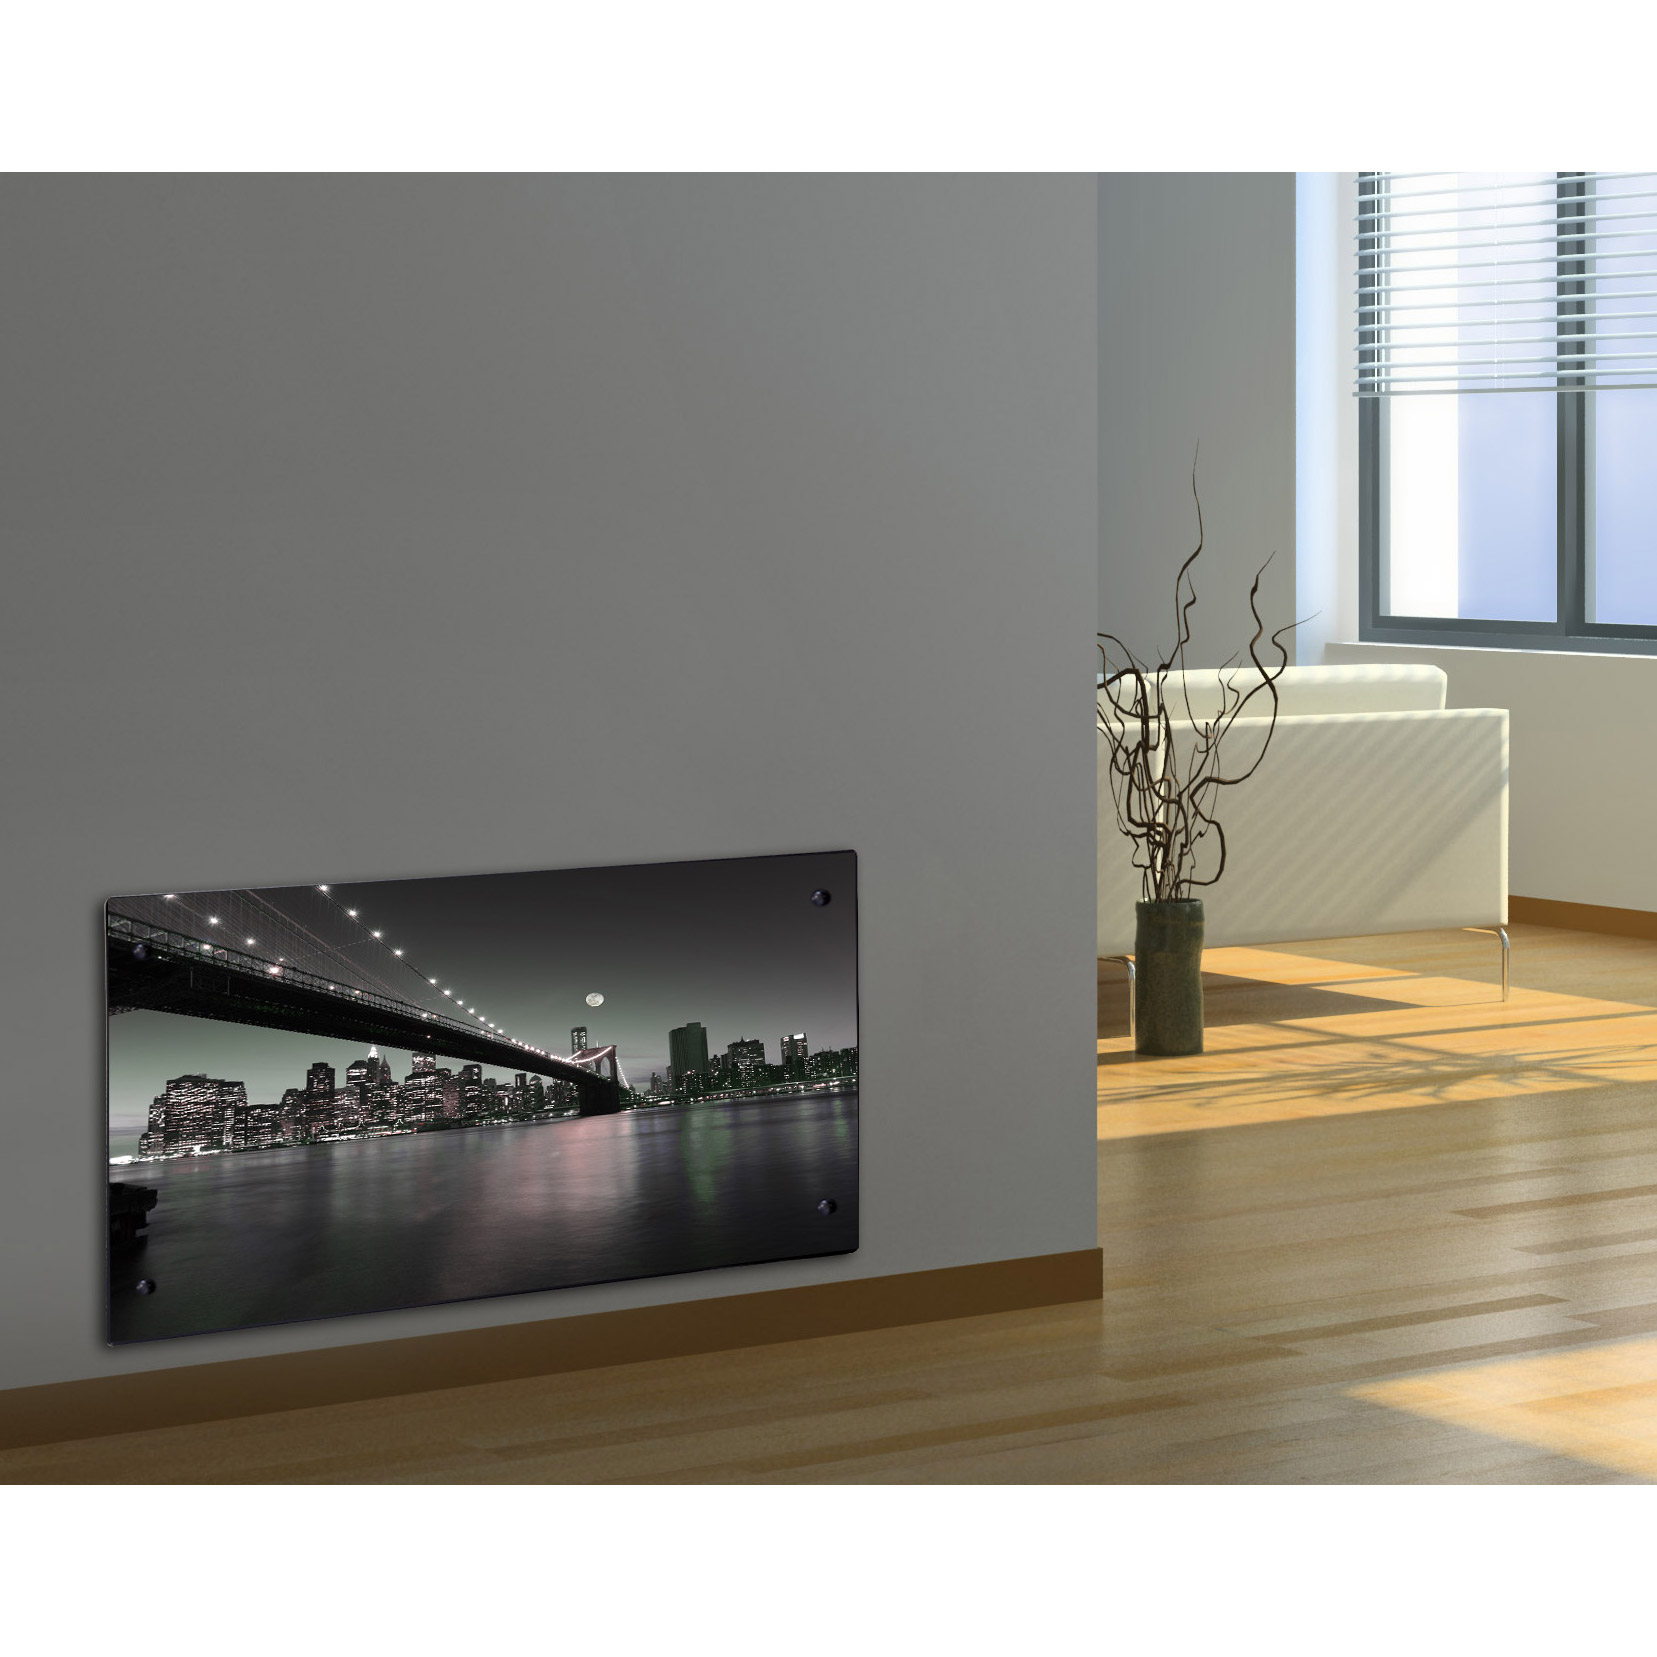 Vente flash radiateur lectrique design by night for Radiateur contemporain